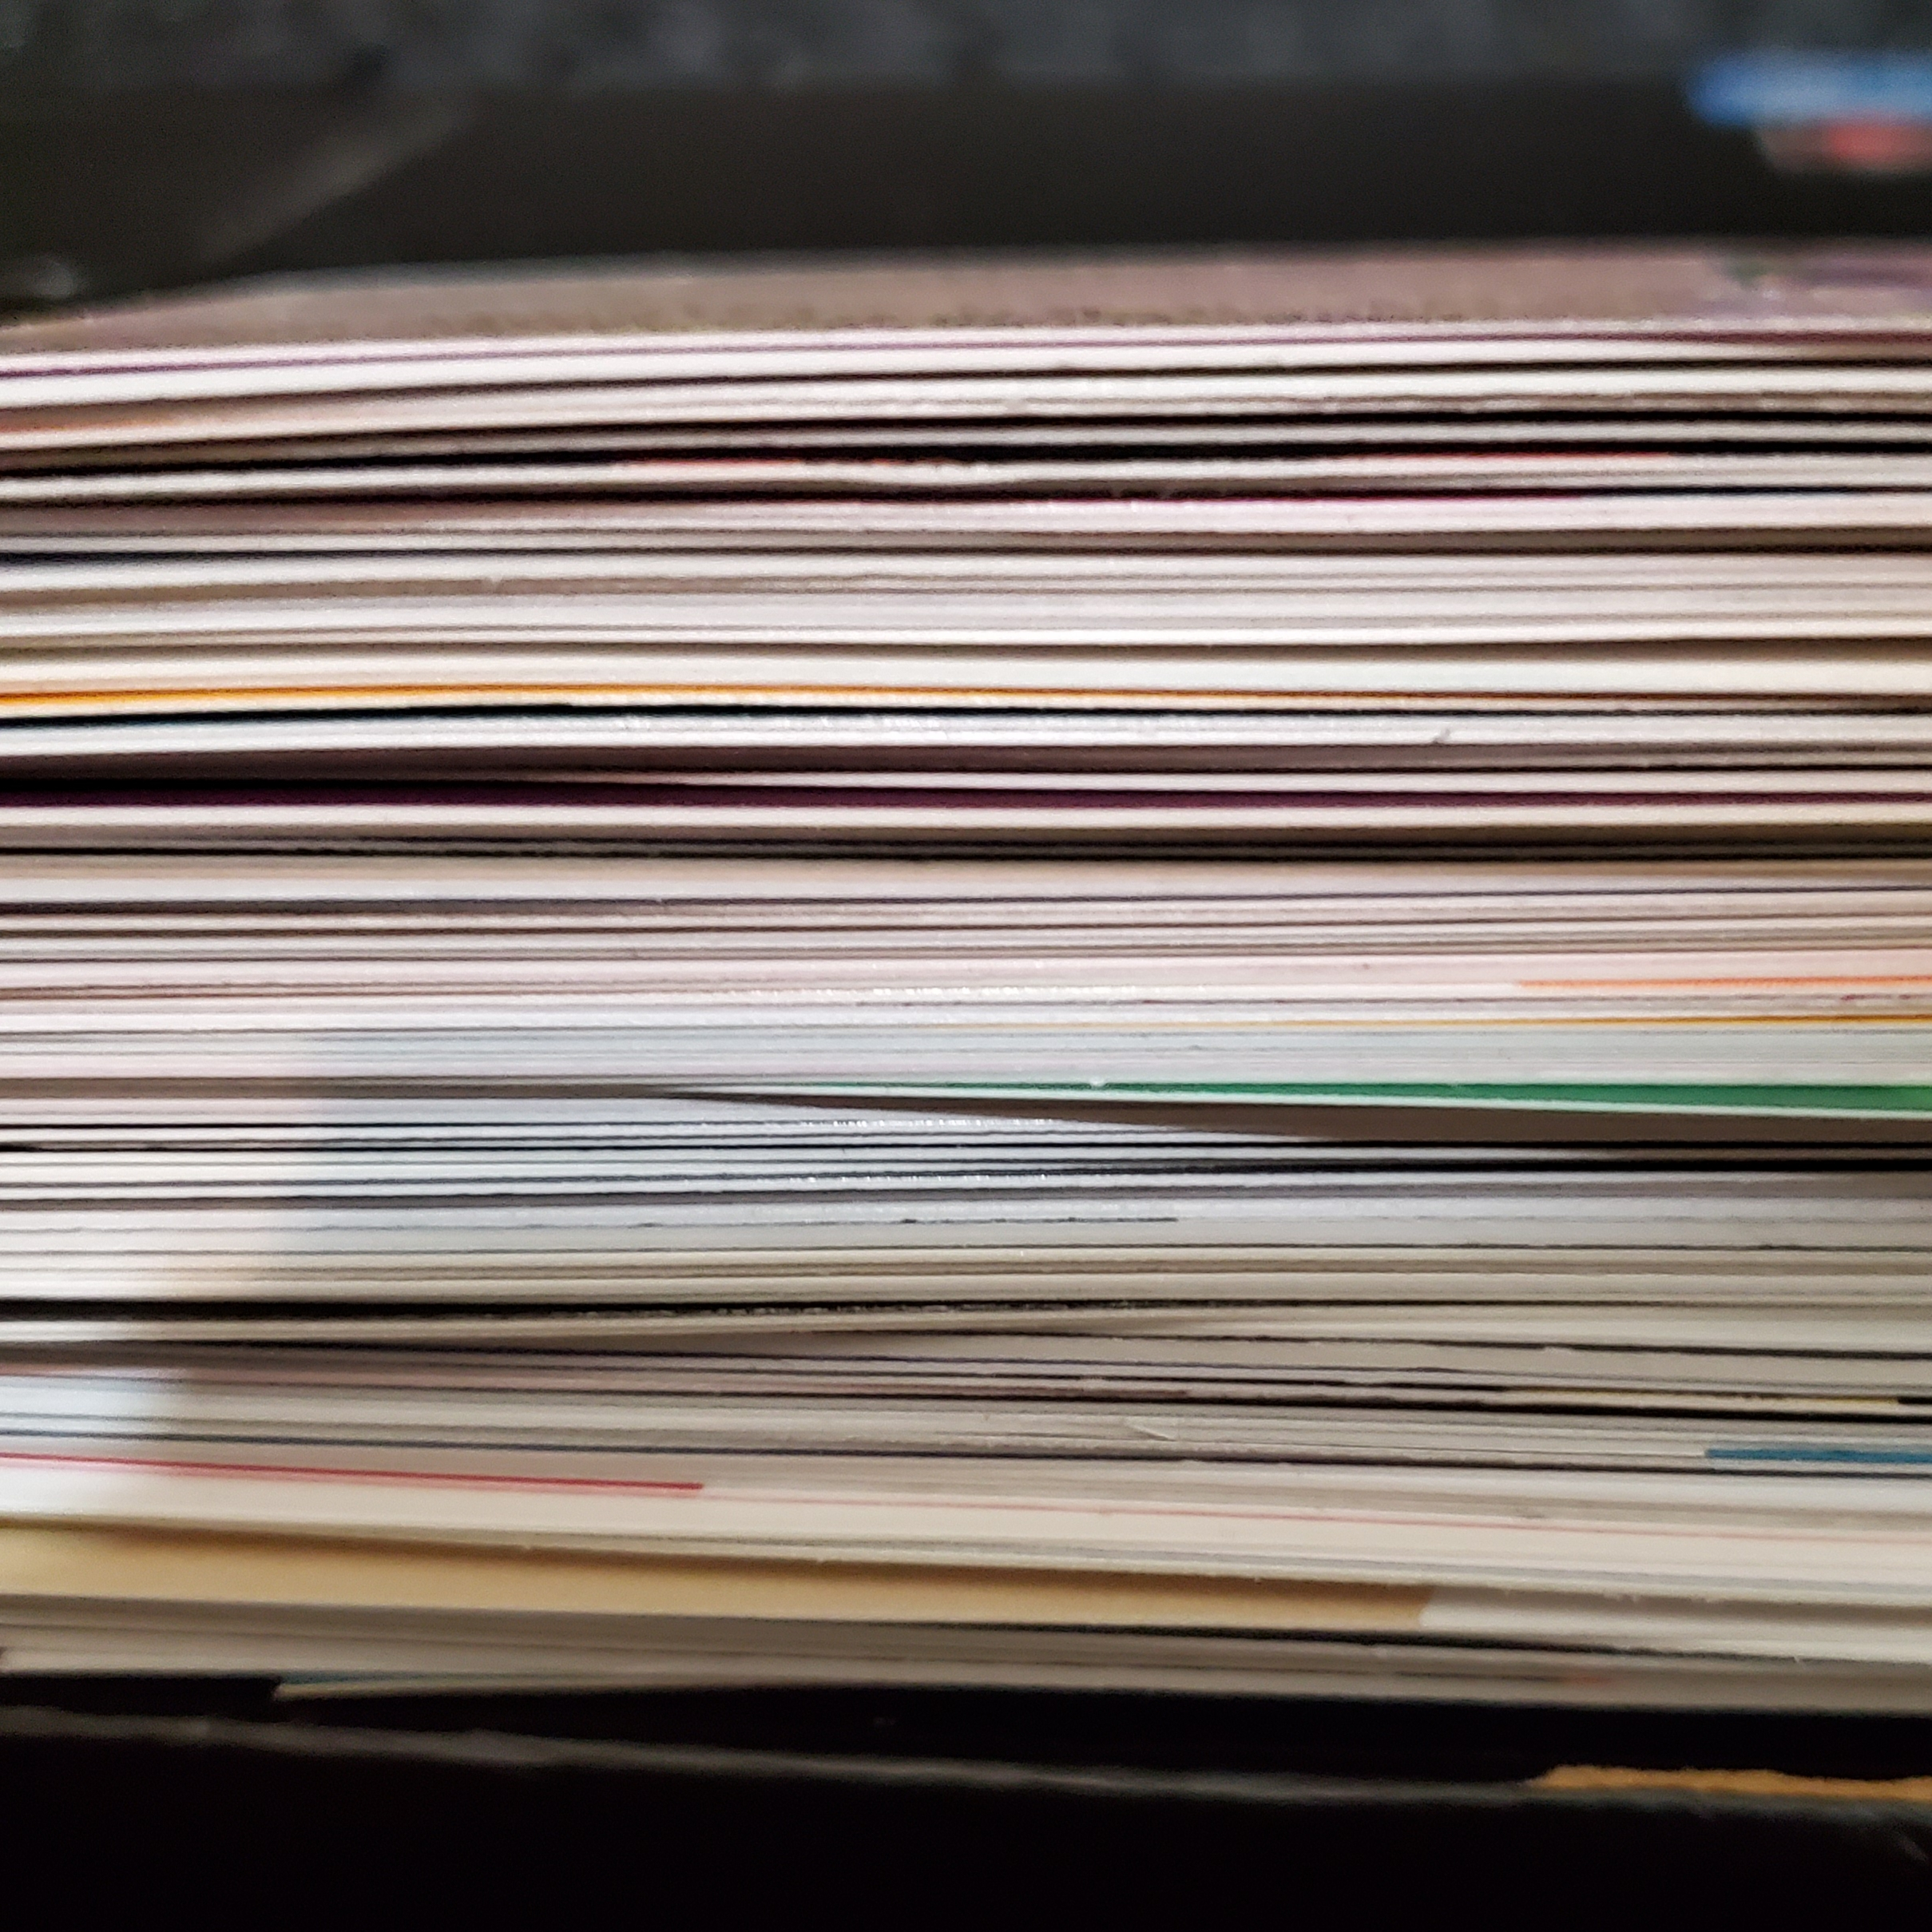 Stack of business cards on a desk